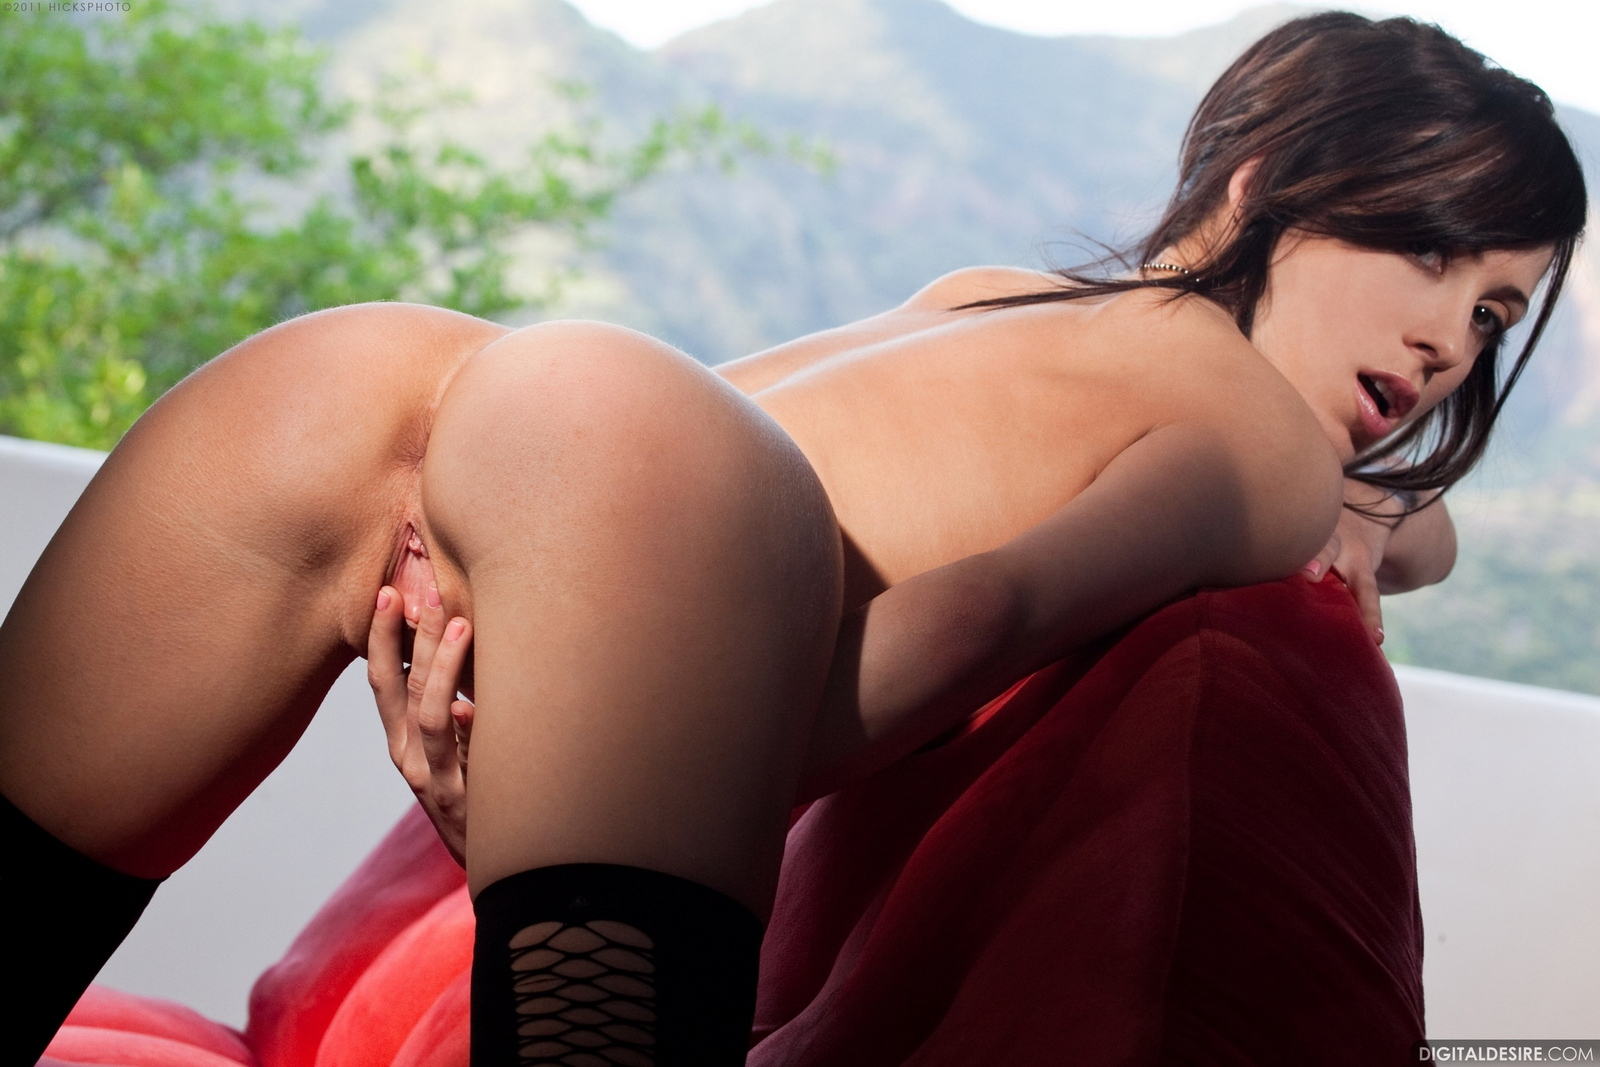 aiden-ashley-stockings-high-heels-nude-shaved-pussy-30